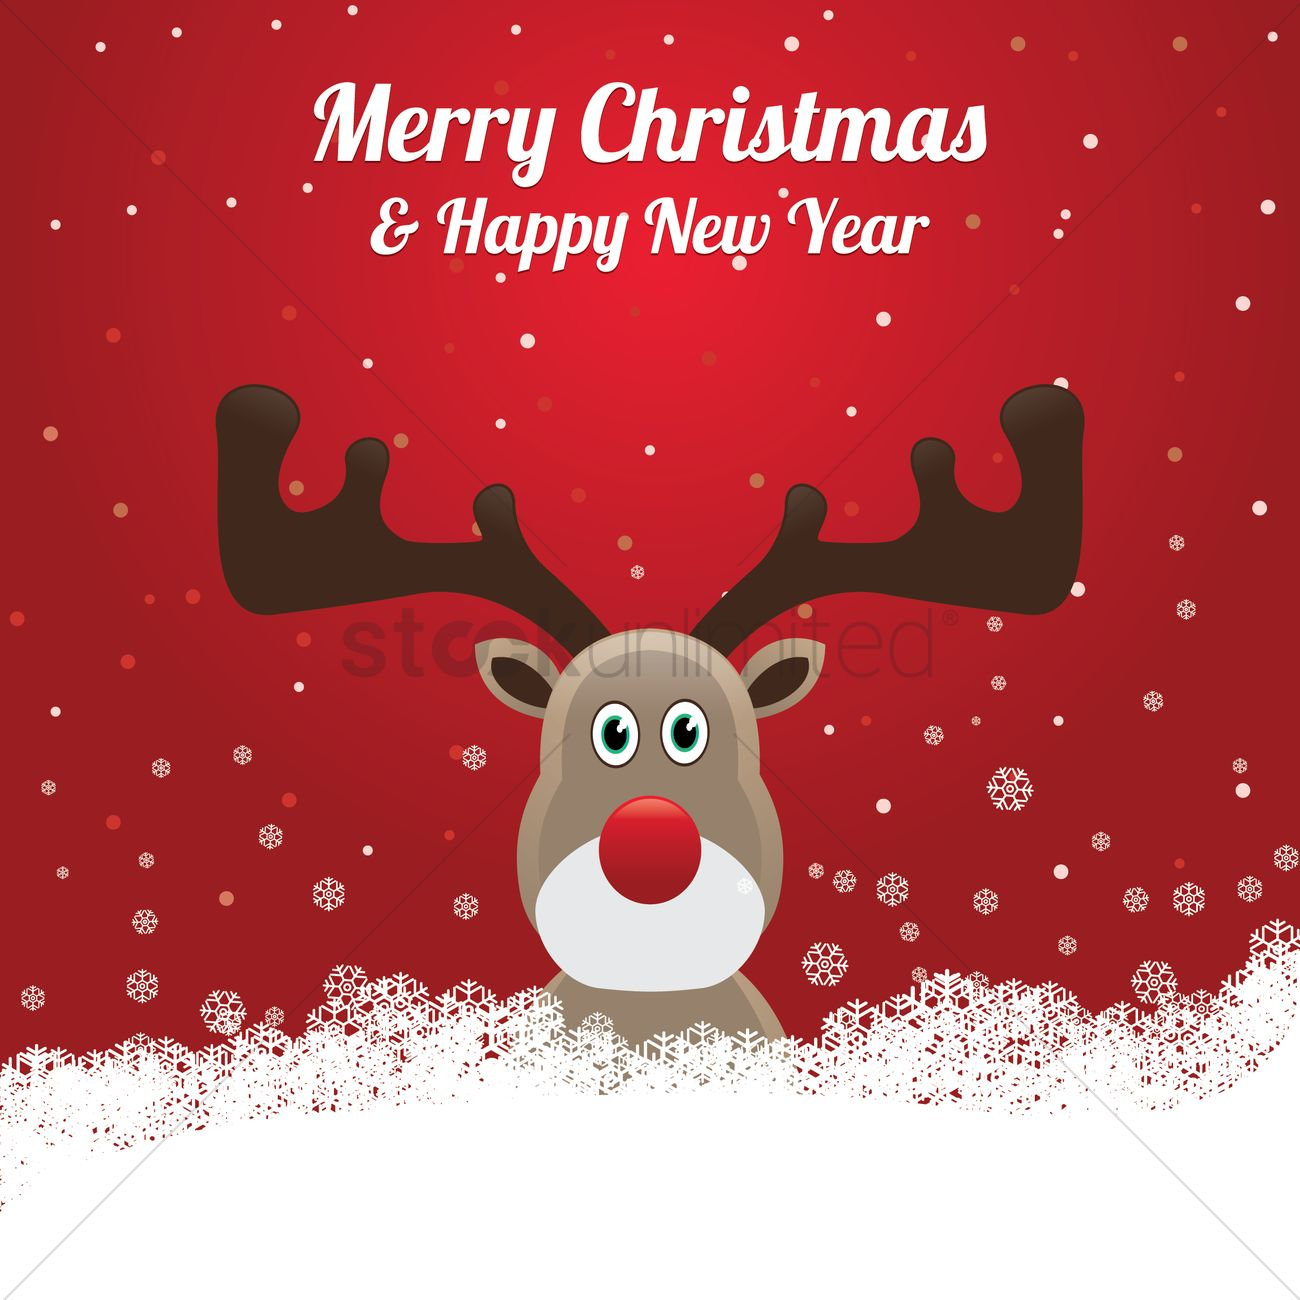 Reindeer With A Merry Christmas Message Vector Image 1527495